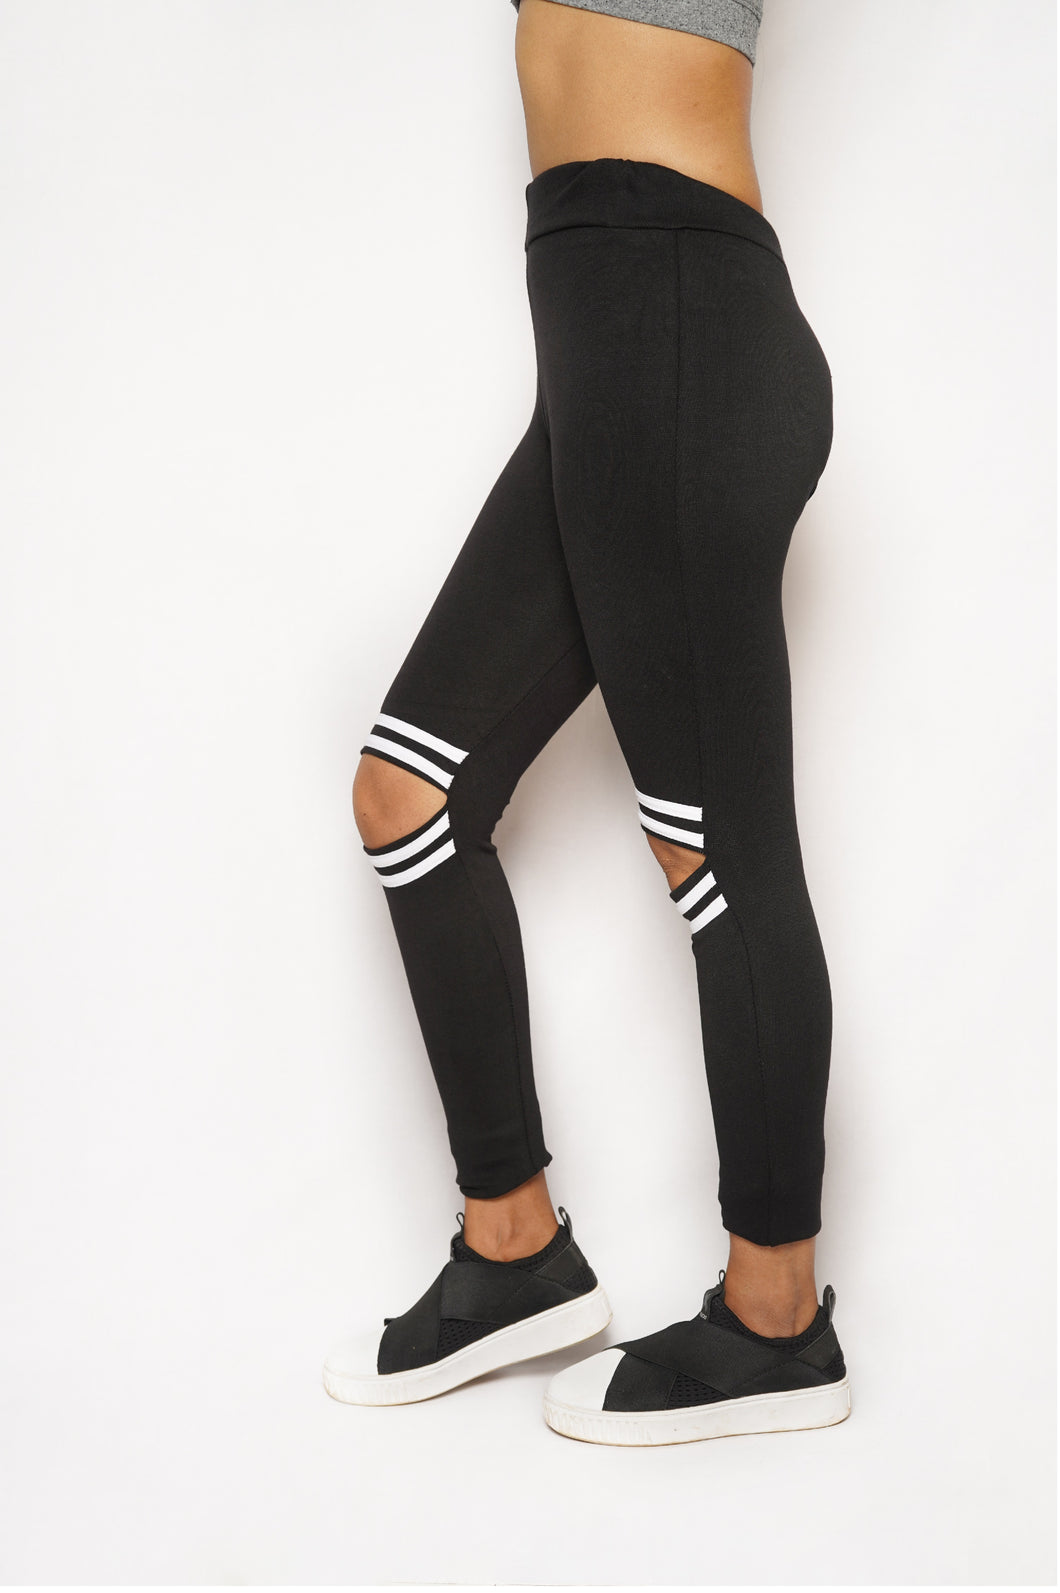 Knee Cut cotton Sports Leggings